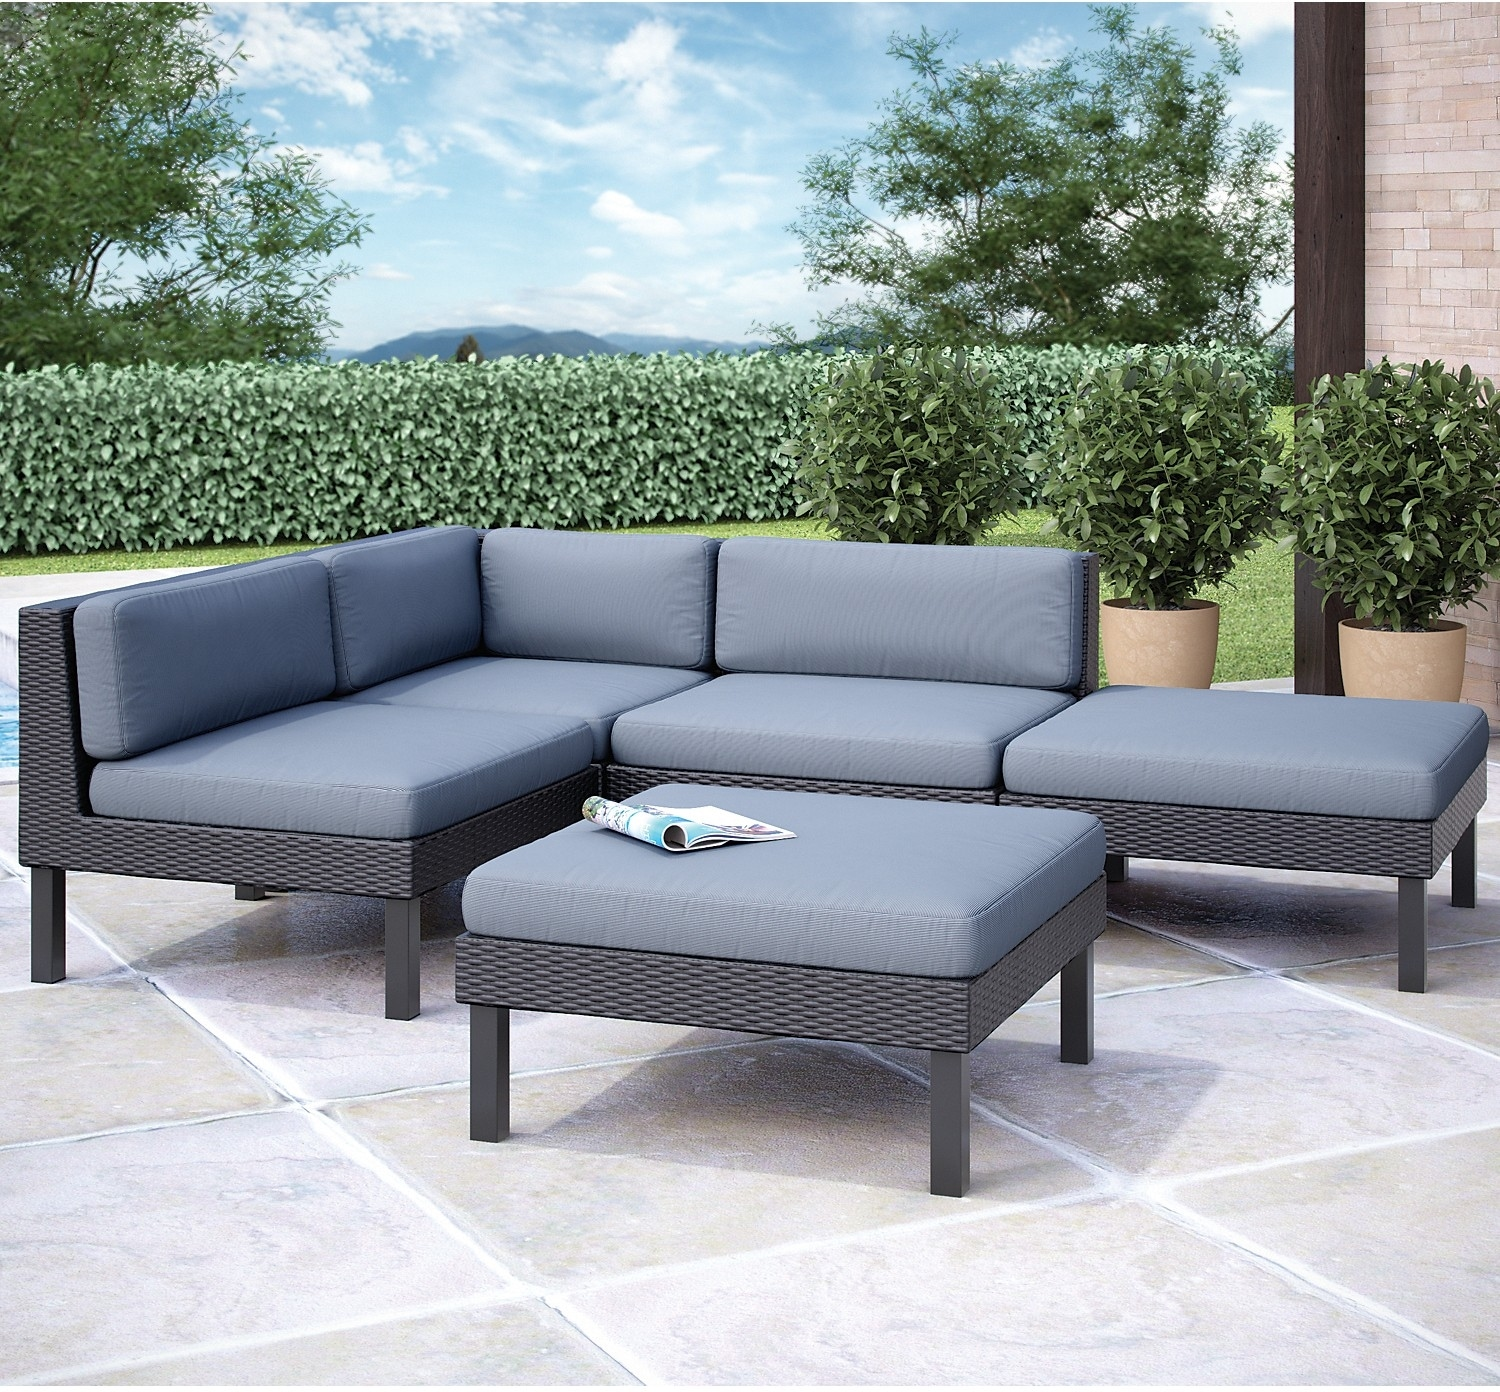 Oakland 5-Piece Sectional with Chaise – Black